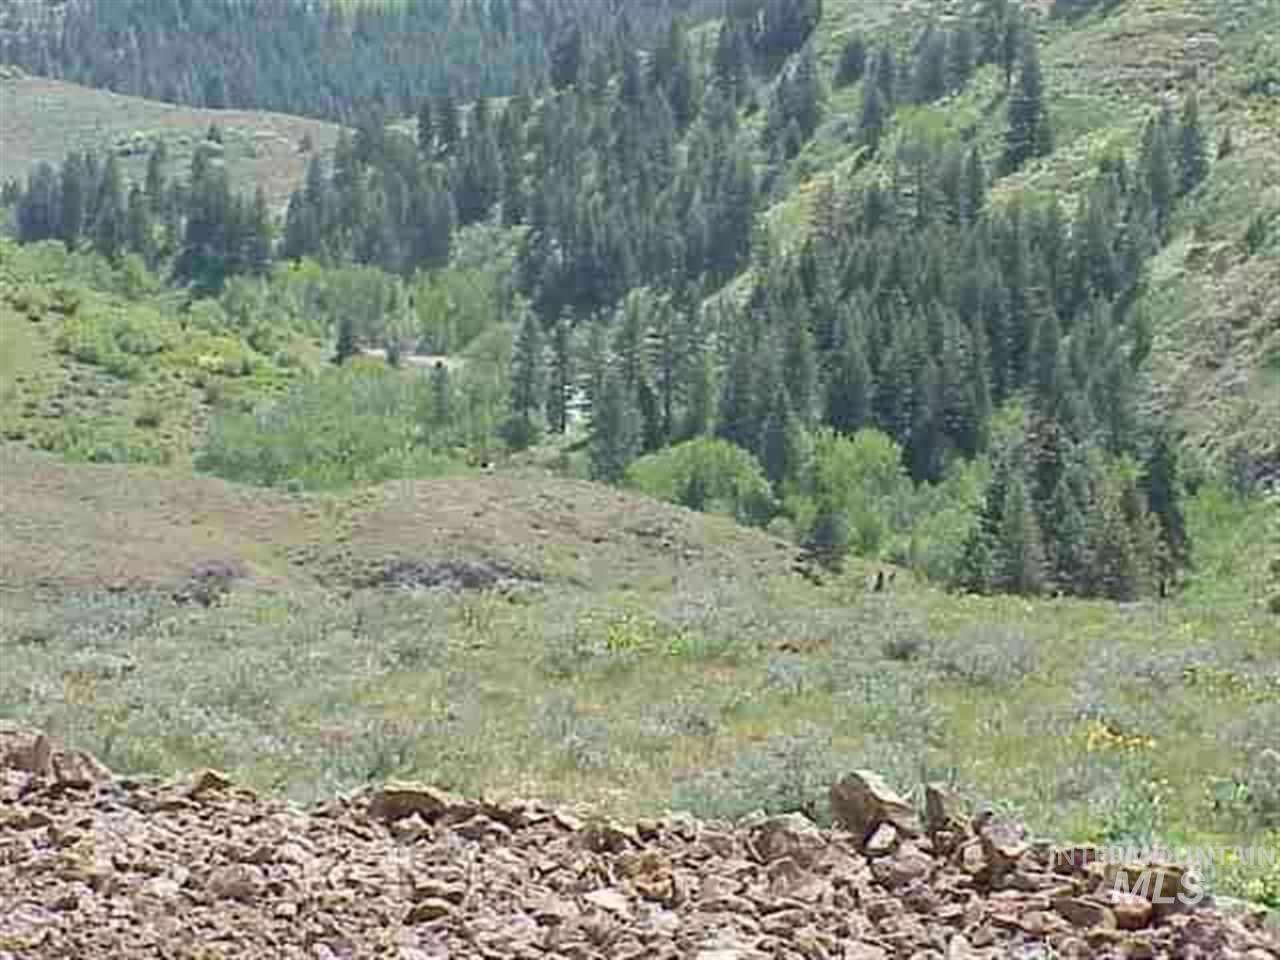 Lot 4 Middle Fork Rd, Council, Idaho 83612, Land For Sale, Price $891,000, 98682709